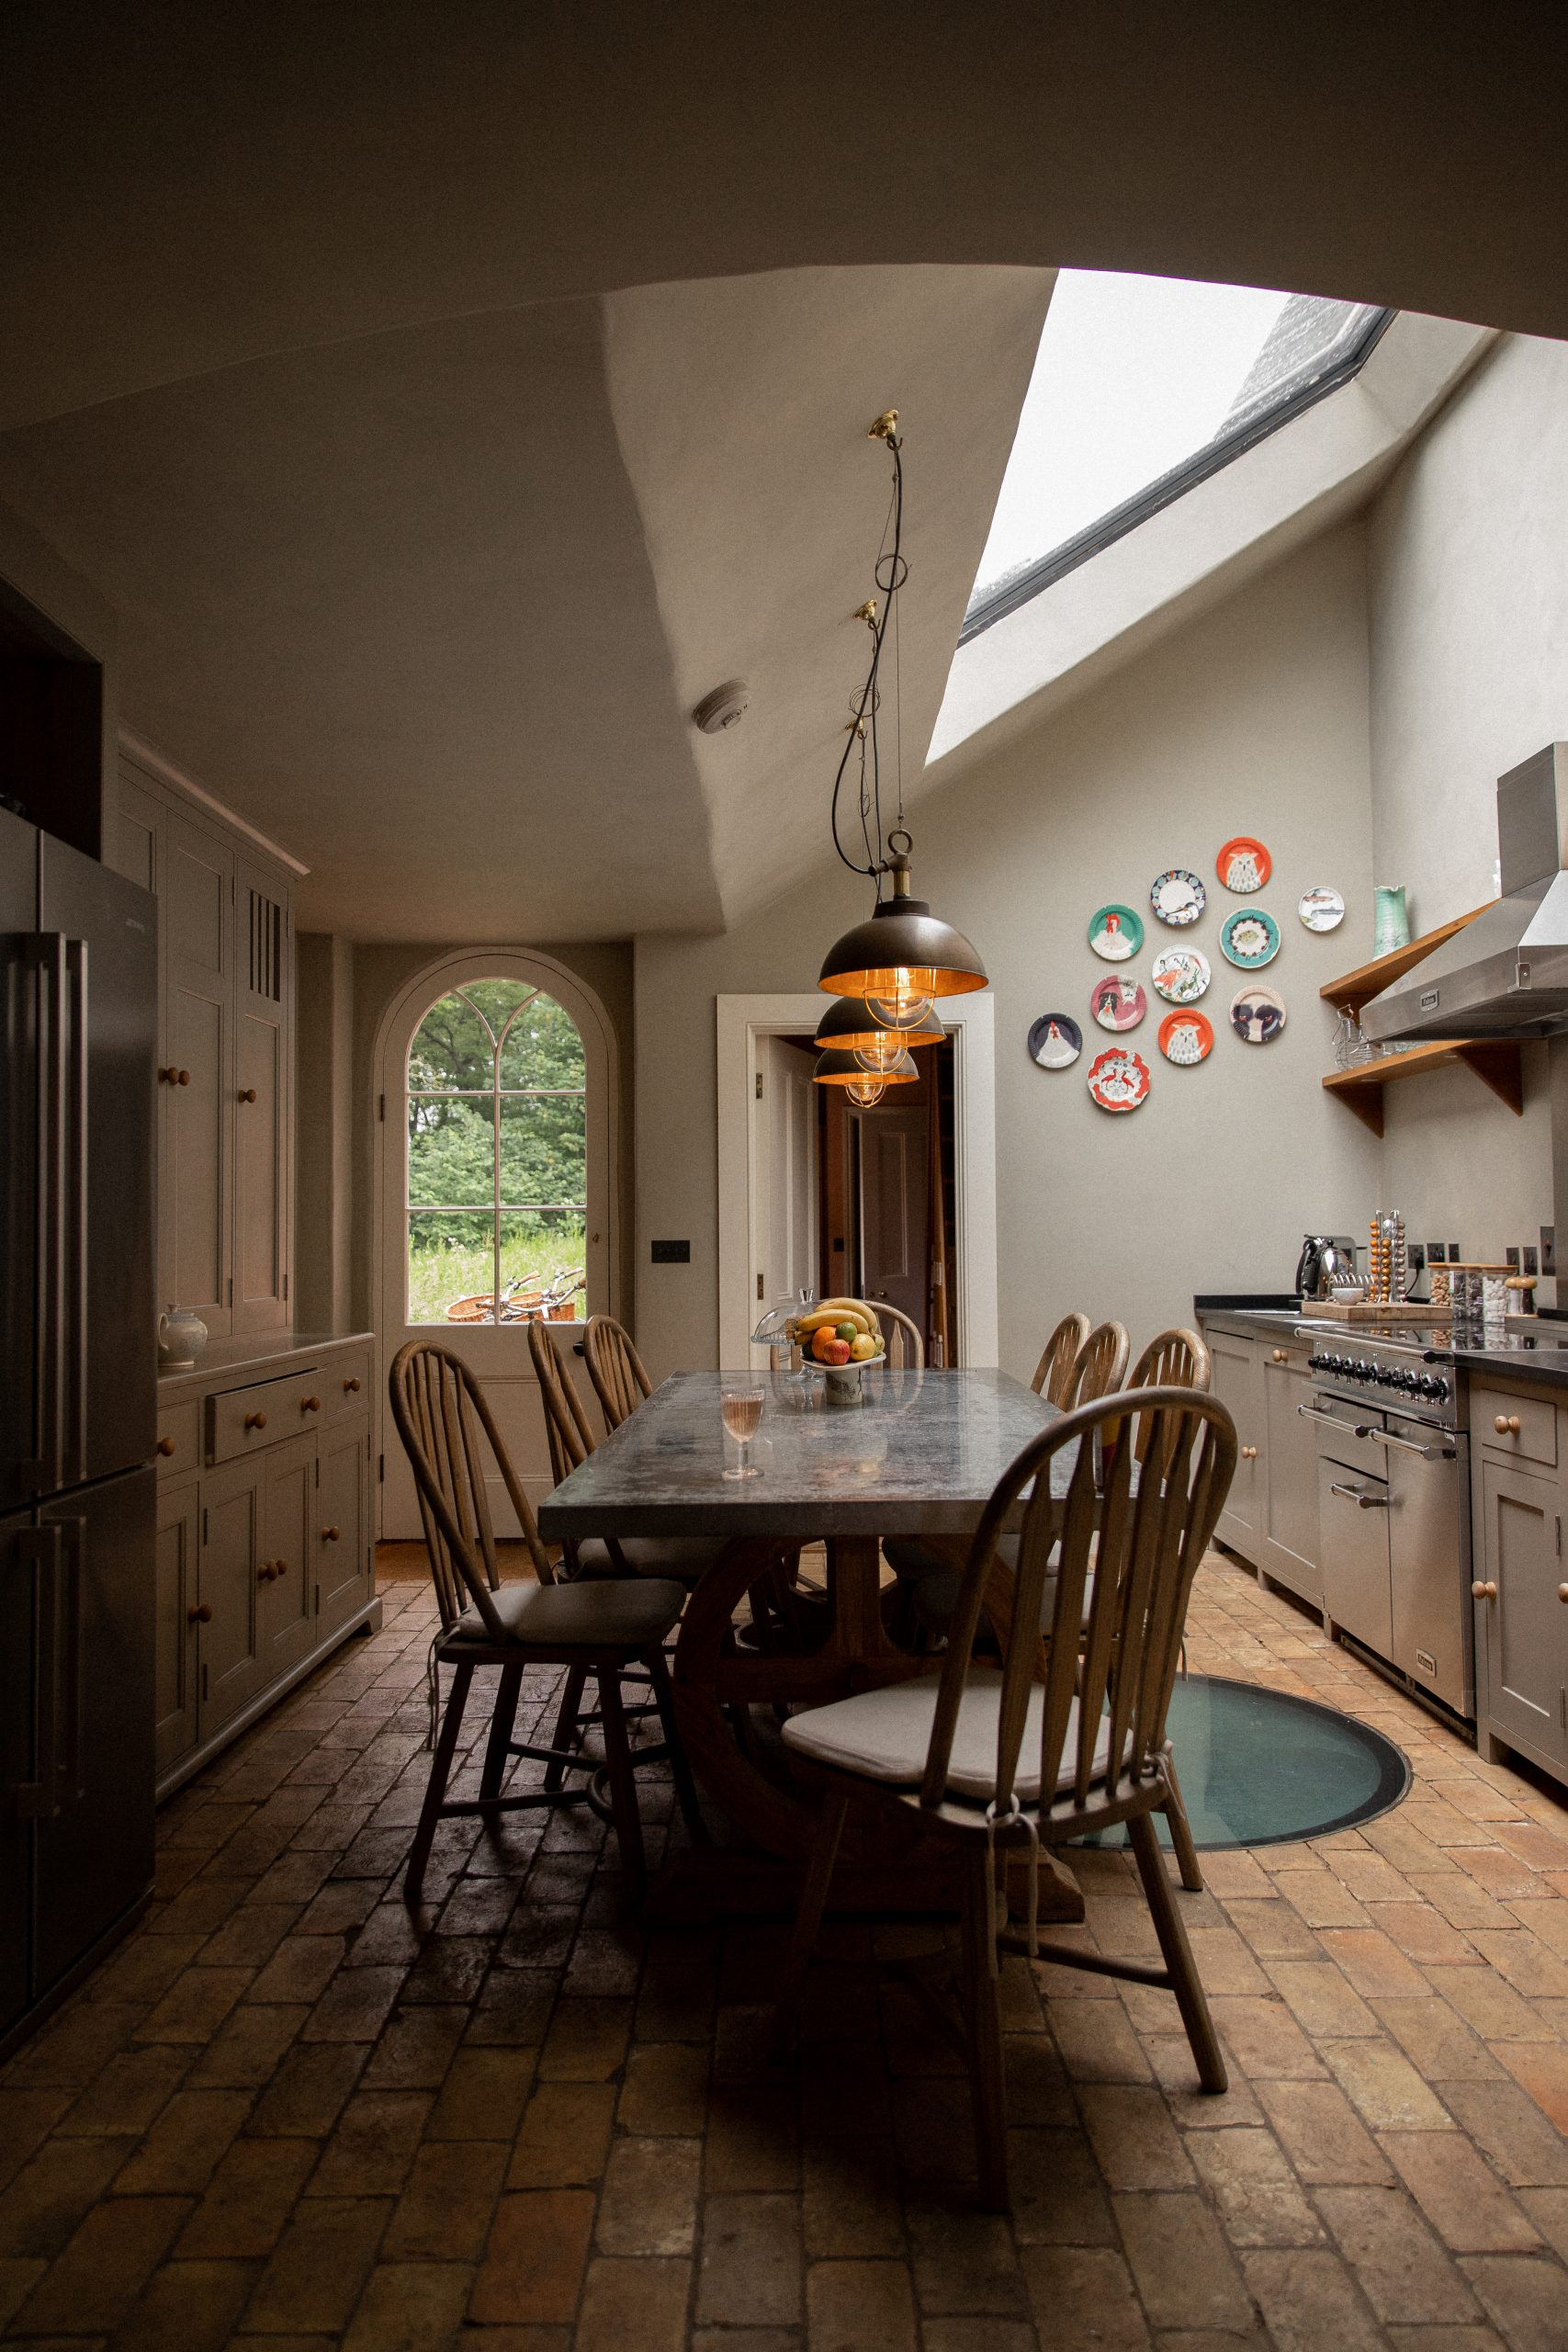 Three hanging pendant lights over the Garden Cottage table. The chair nearest the camera is pulled out and there is a glass of wine on the table